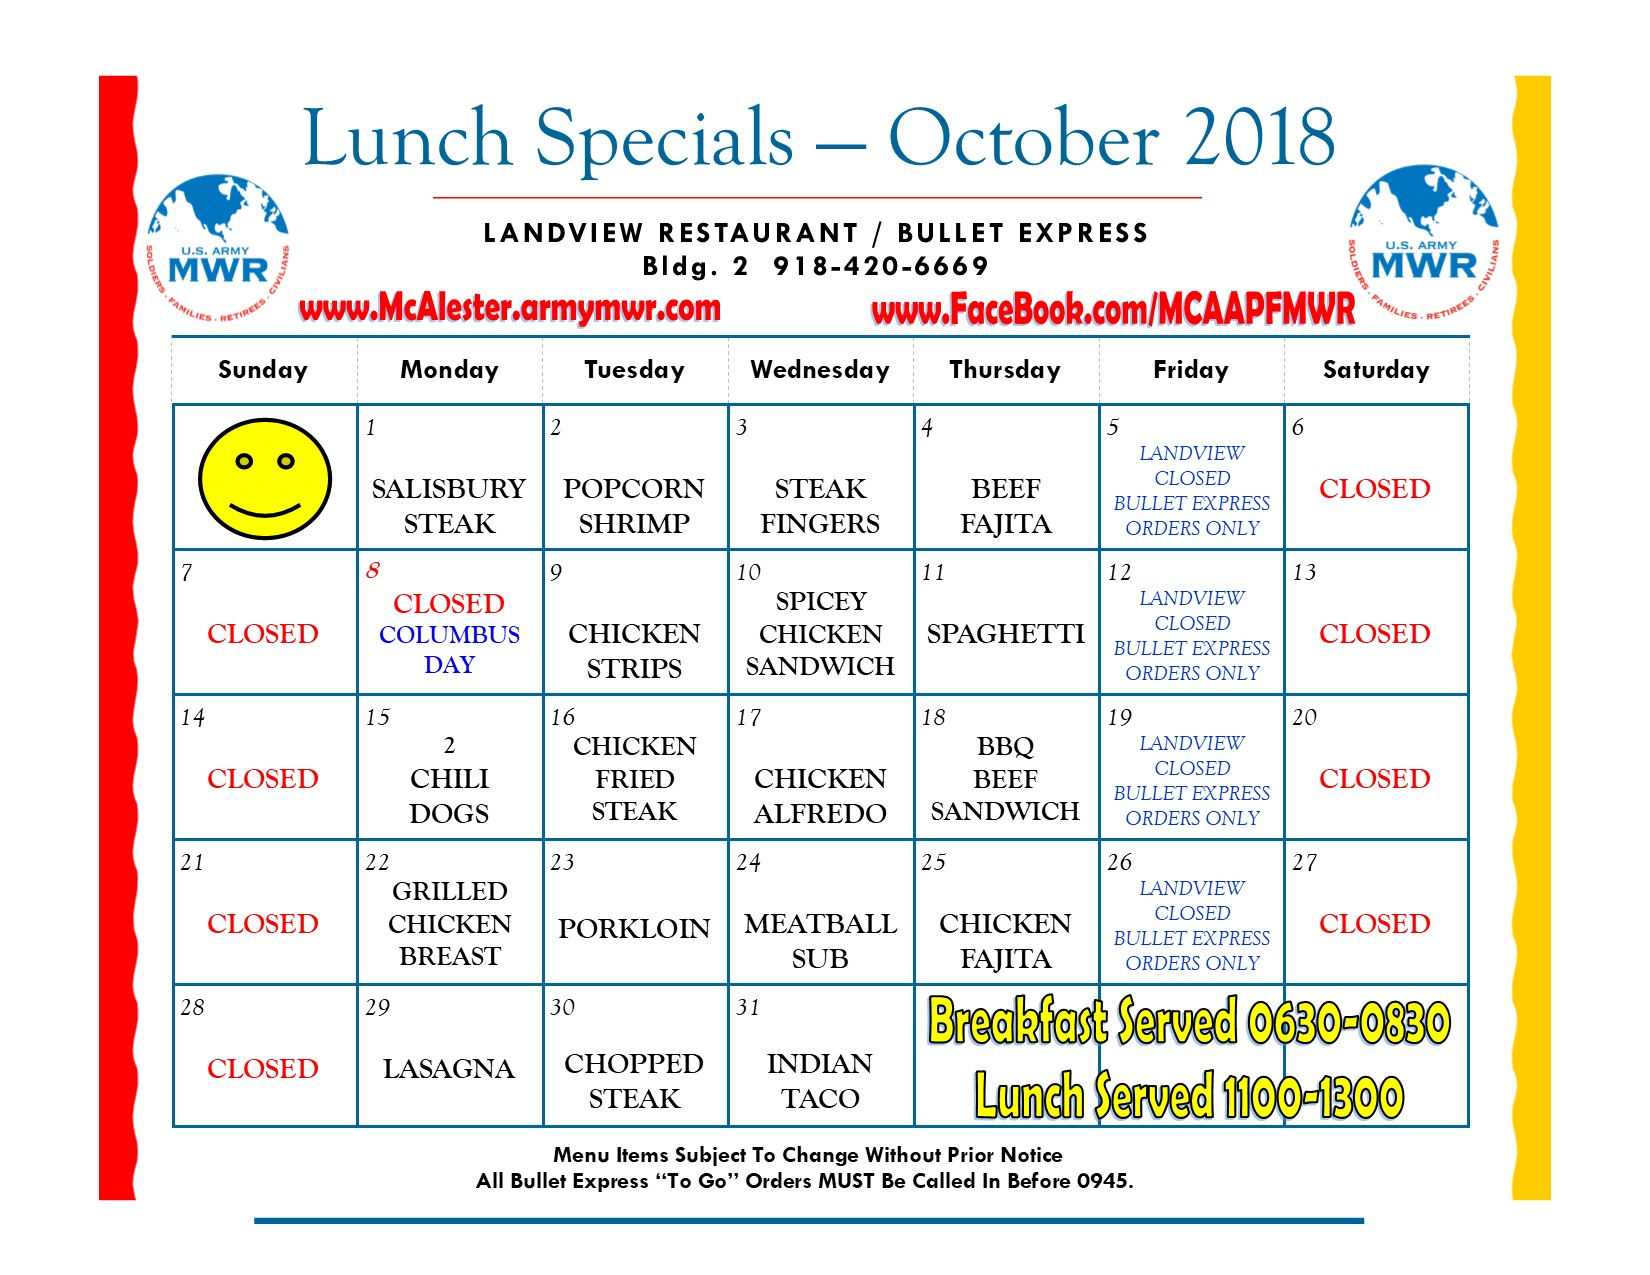 Landview and Bullet Express Lunch Special Menu